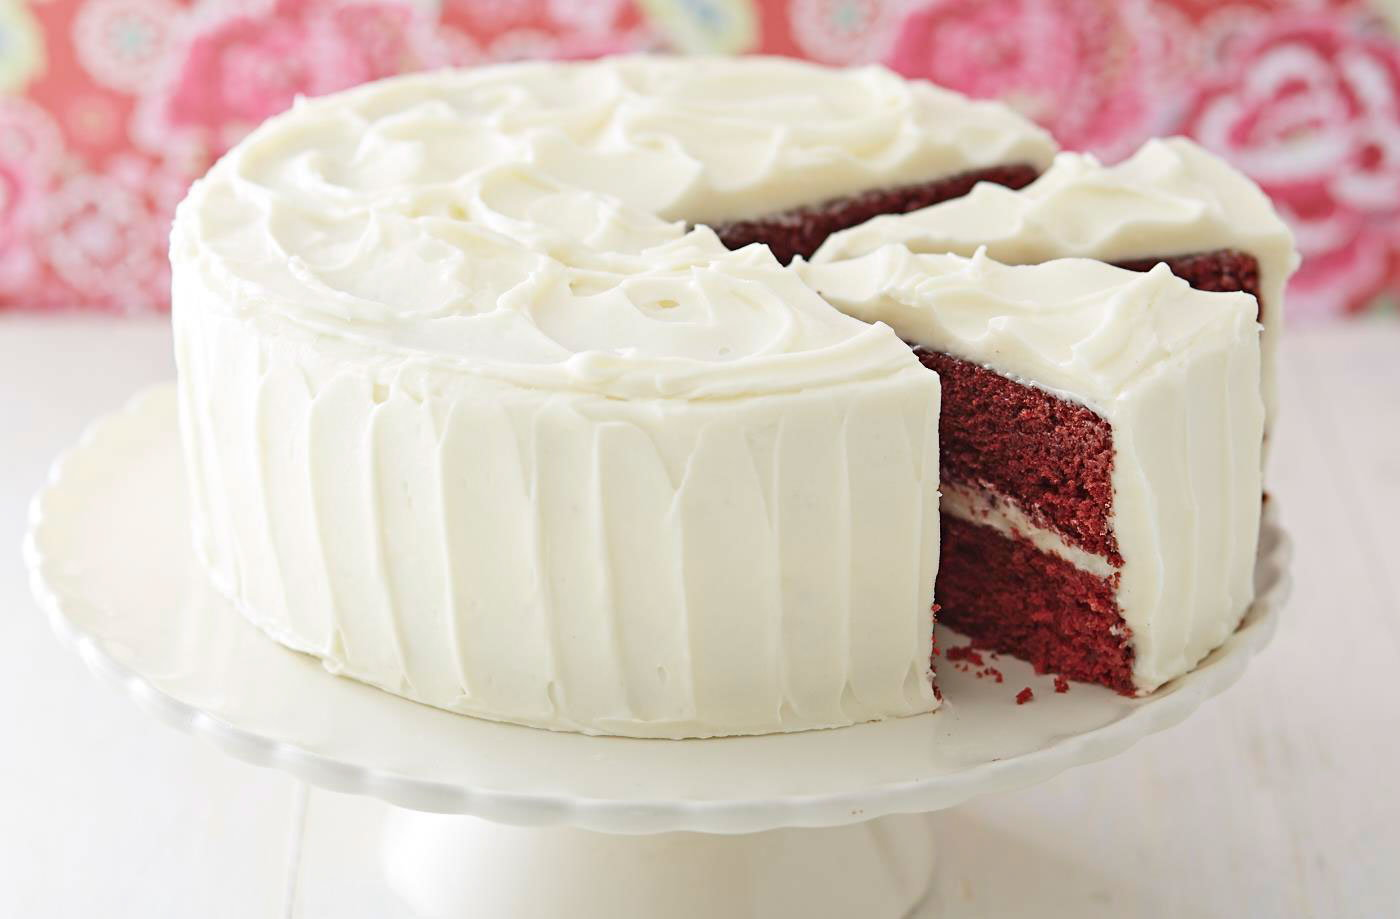 Strawberry Velvet Cake Recipe